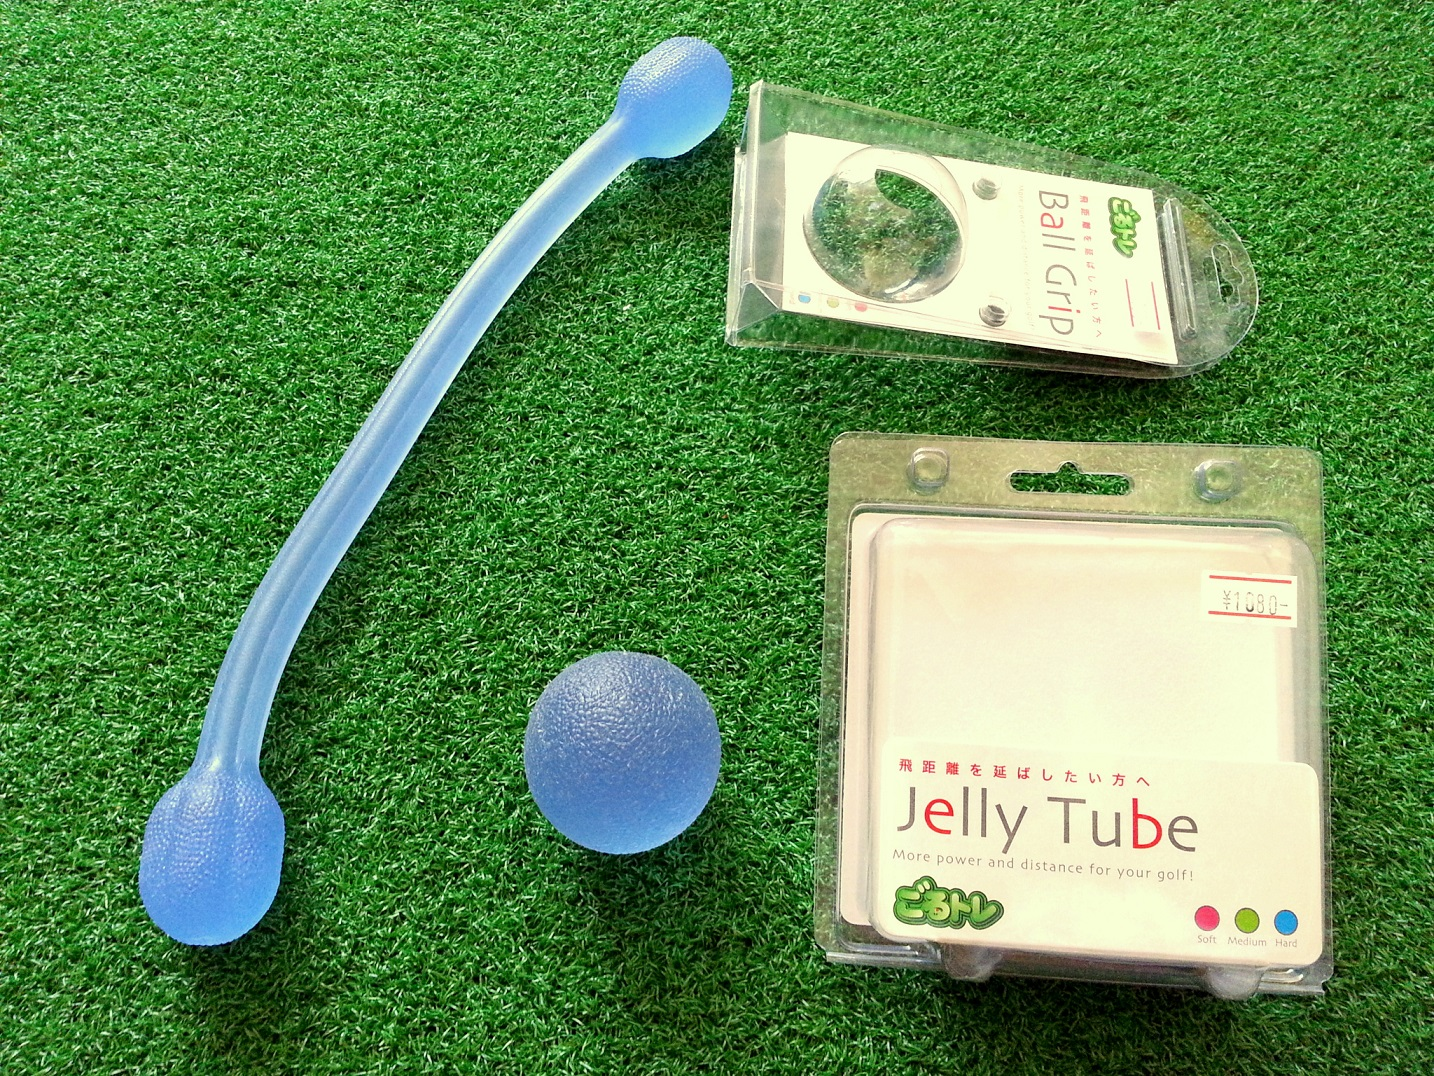 Jelly tube